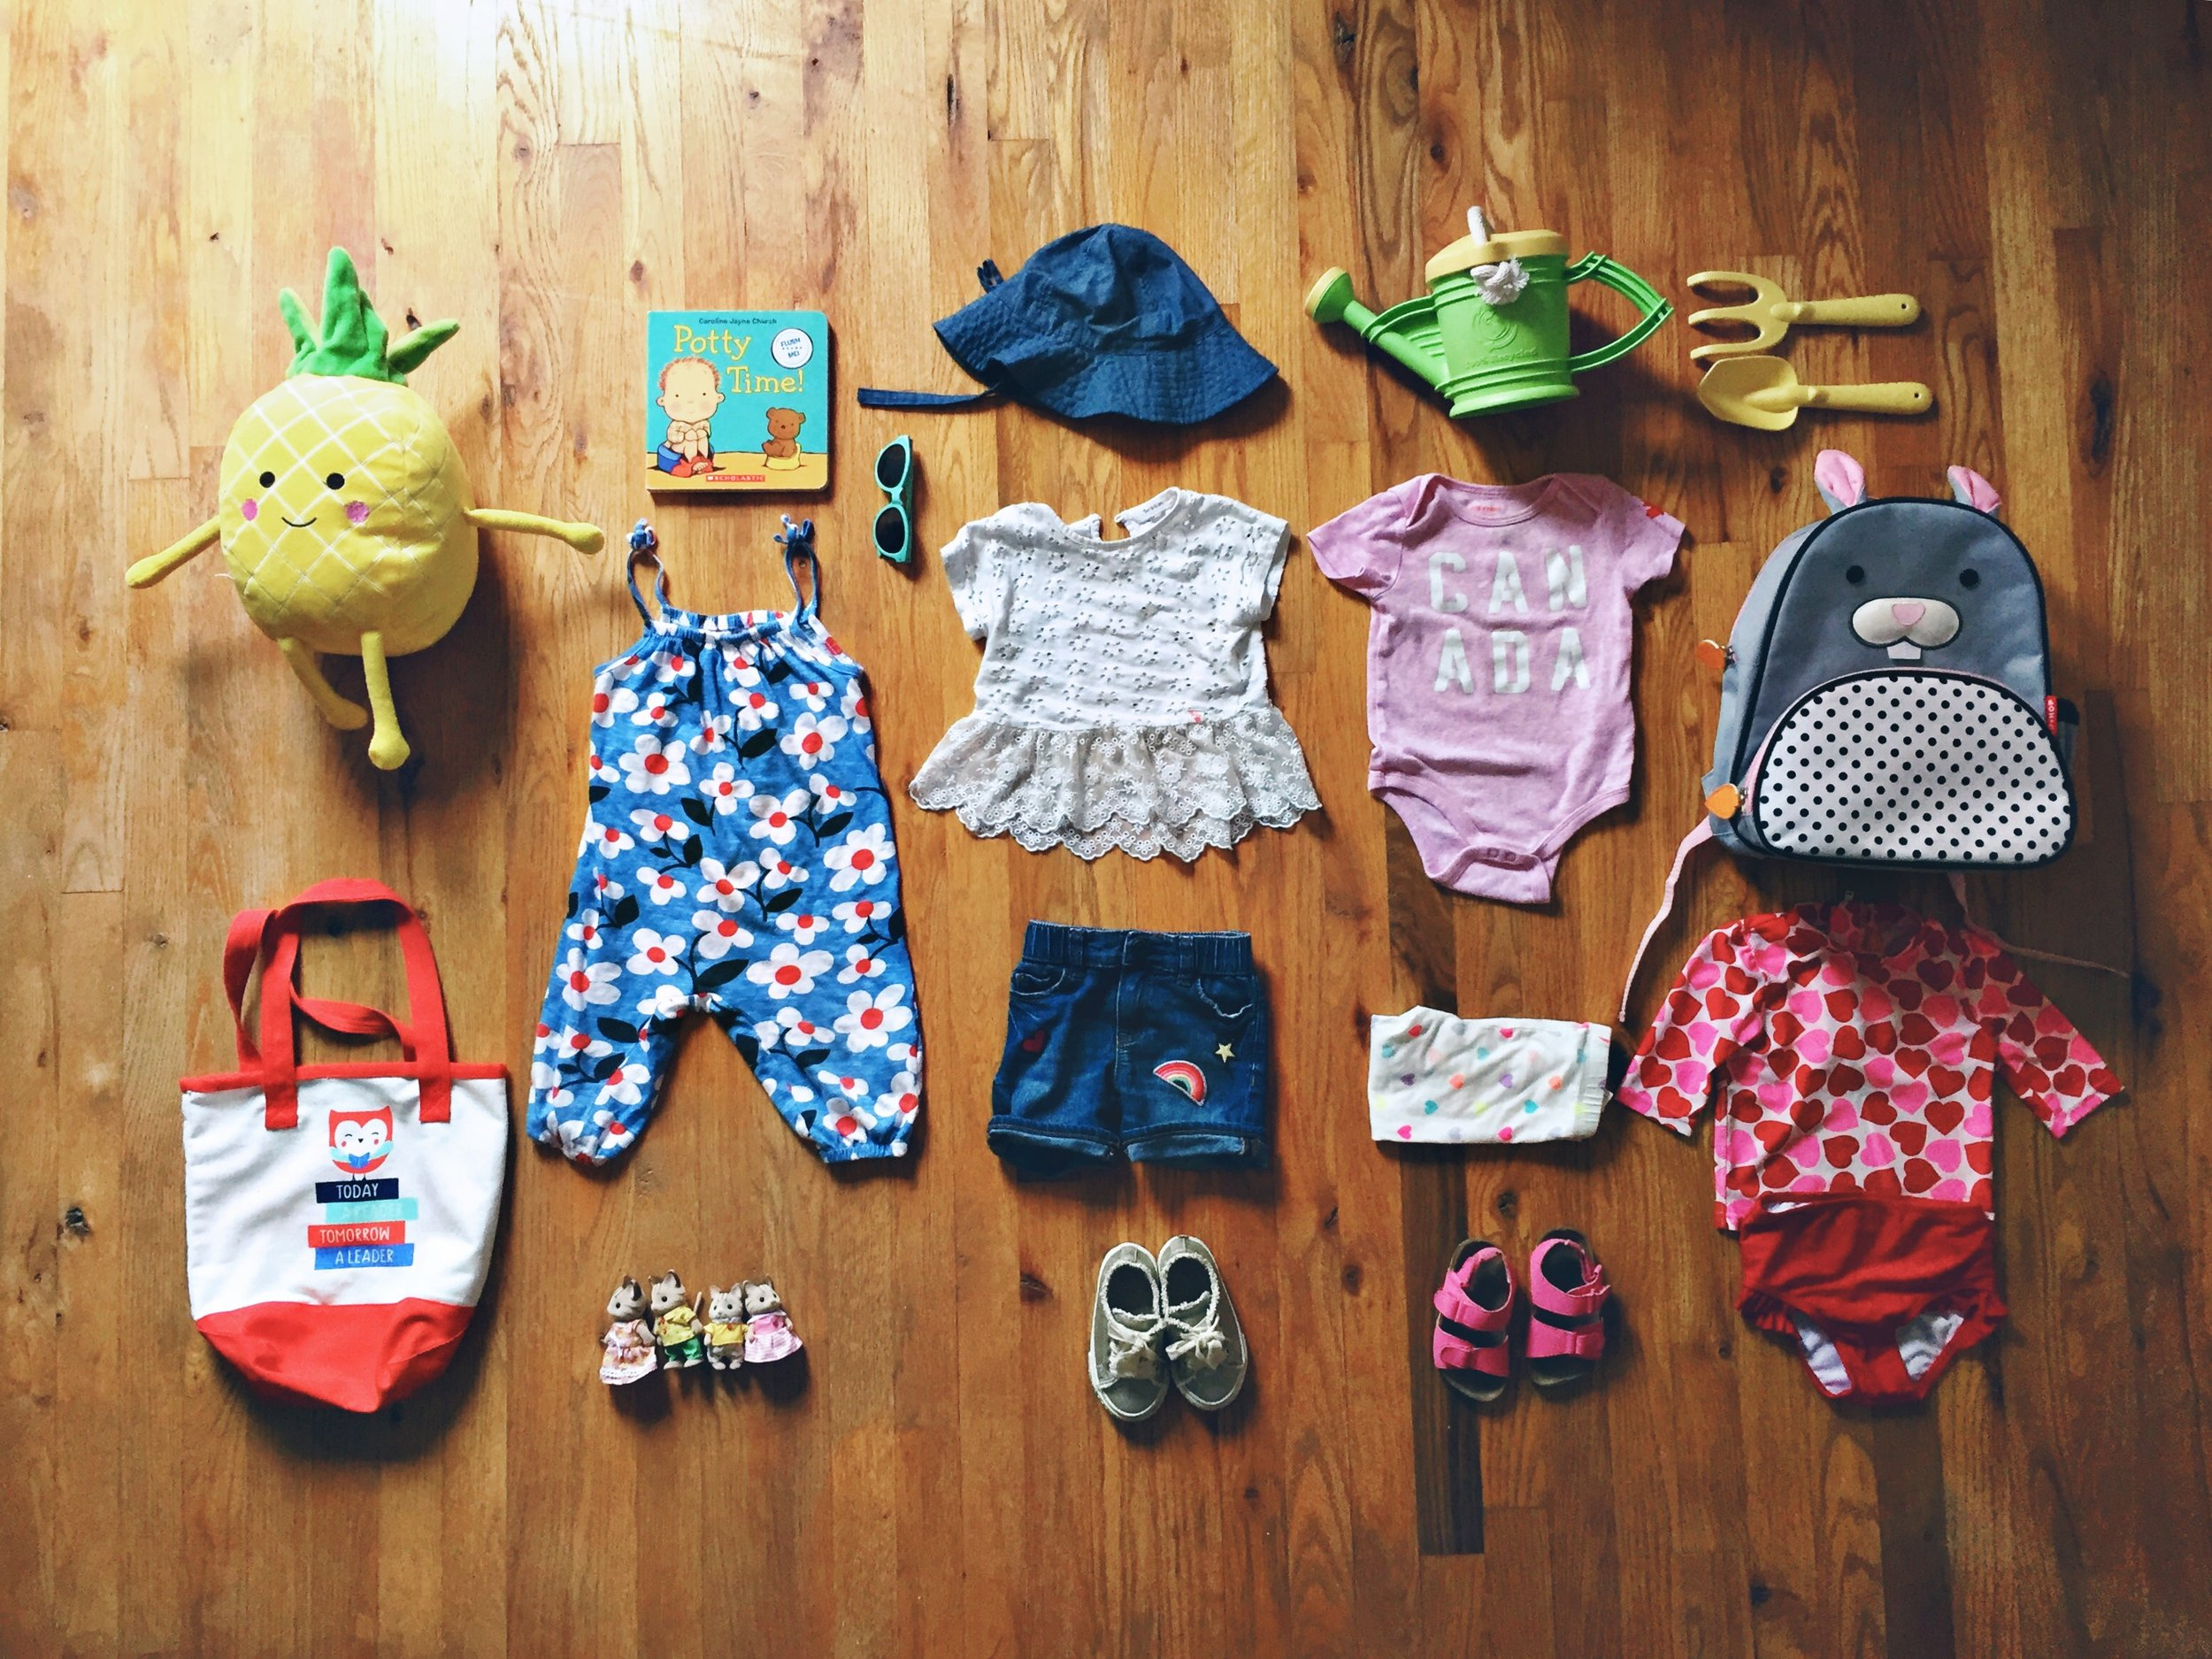 From top centre - clockwise:  Hat     Carters  , watering can & tools     Indigo,   Bunny Skip Hop Backpack     Indigo,   Heart swimsuit     Joe Fresh,   Canada Outfit     Joe Fresh,   Heart Pants     Children's Place,   Sandles     Joe Fresh  , Lace Shoes    Zara,  Jean Shorts     The Gap,   Lace Top    Korea,  Green Sunglasses     Carters  , Blue & White Flower Romper    Joe Fresh,  4 Calico Critters     The Bay,   Canvus bag     Chapters/Indigo,   Pineapple Guy   Gift from  Auntie Nicole,  Potty Time Book     Indigo.